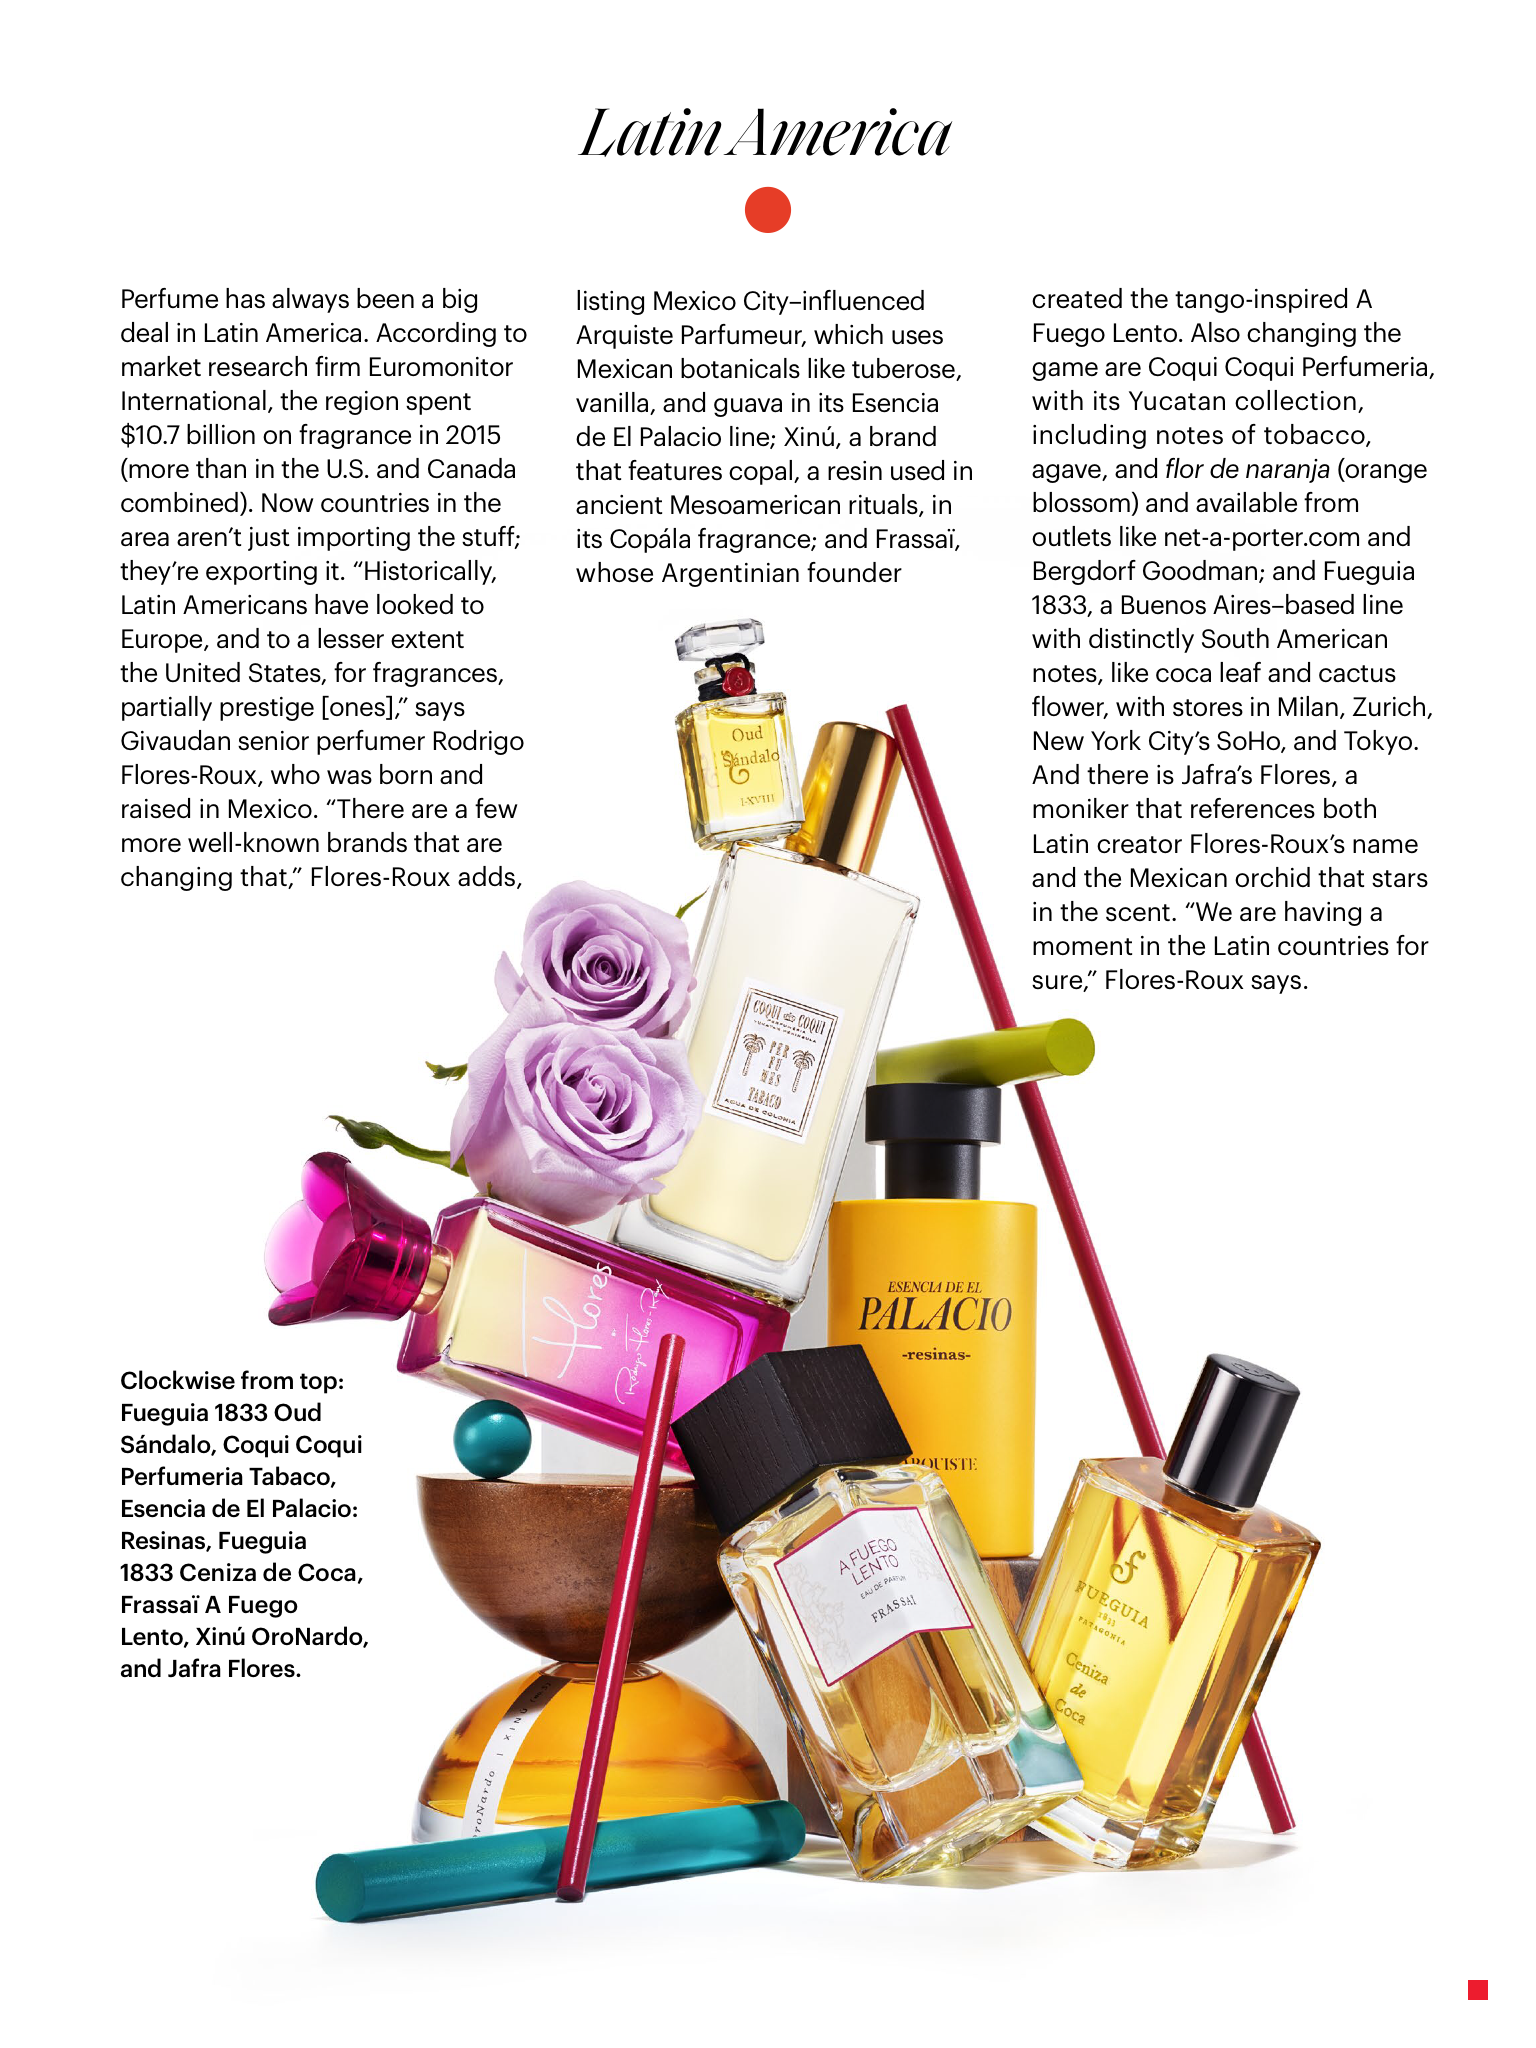 Allure Magazine March Issue 2019 Feature A Fuego Lento.PNG